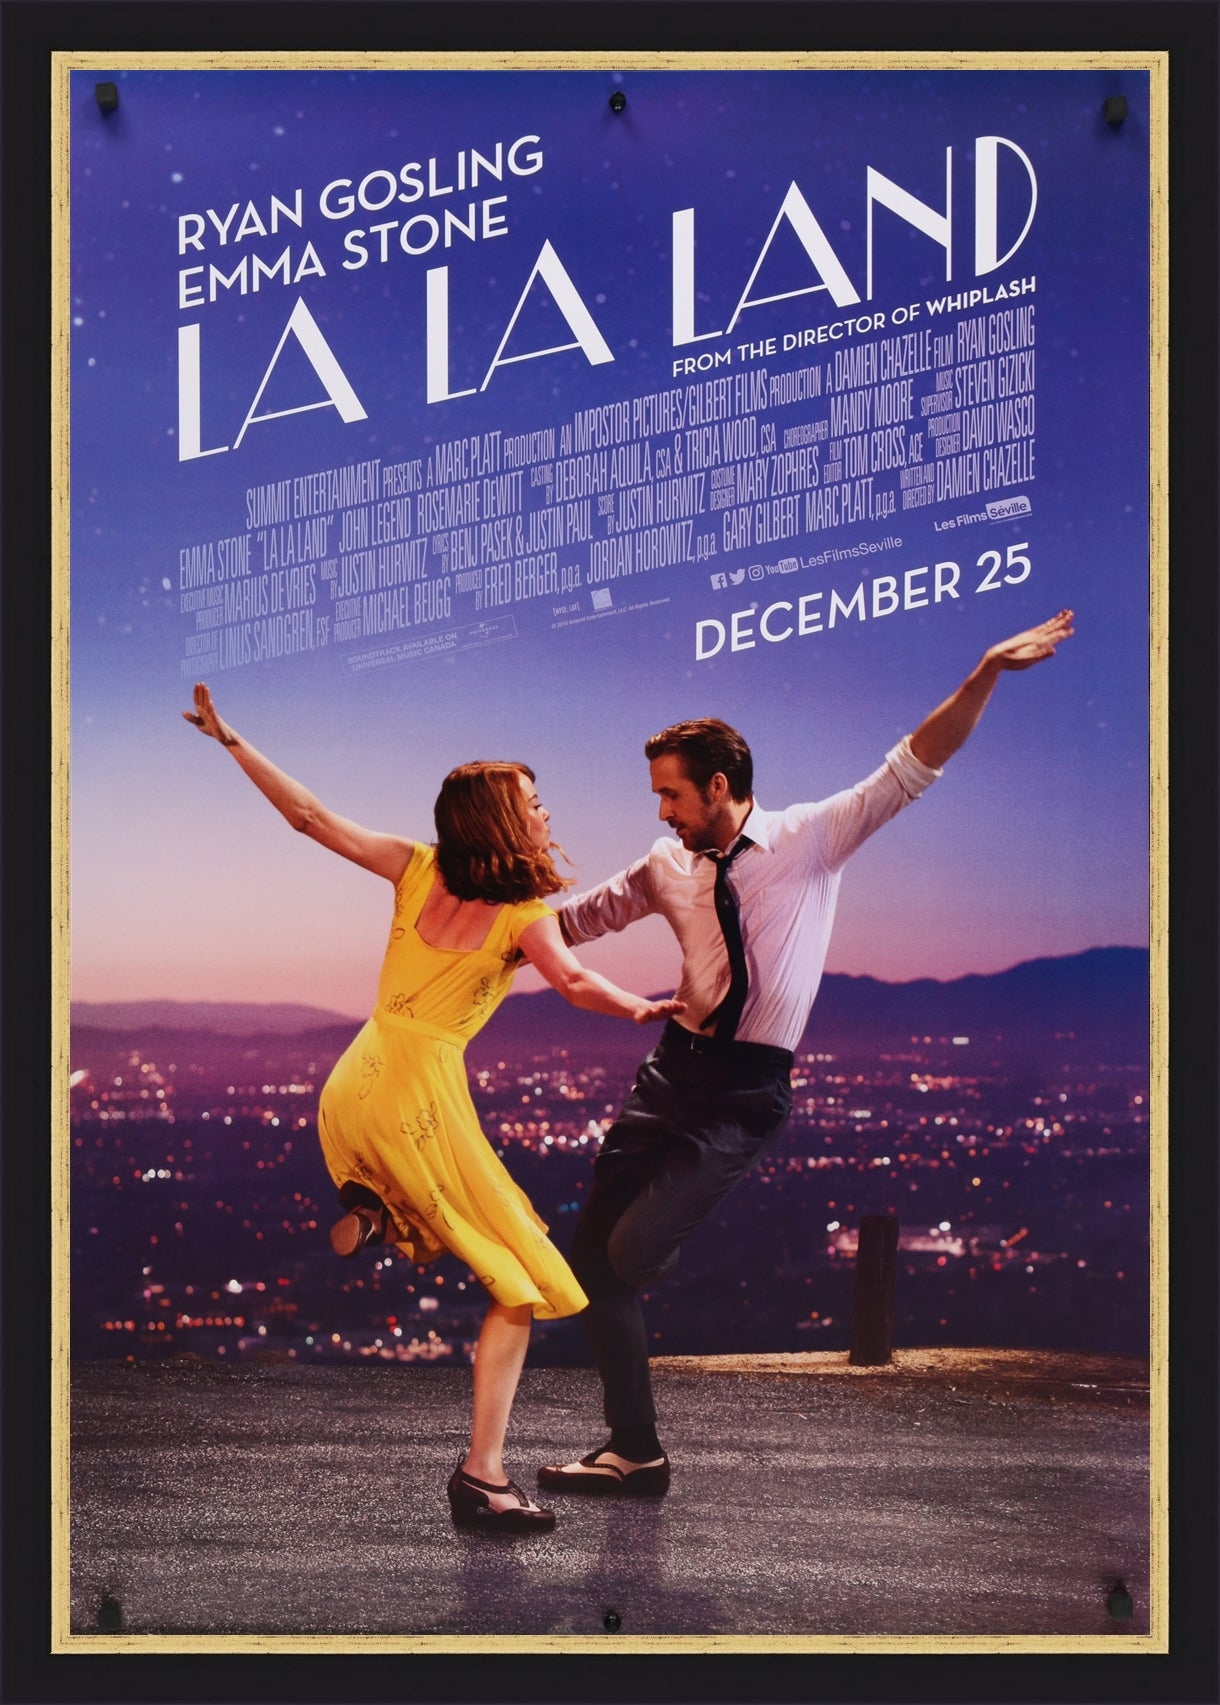 An original movie poster for the film La La Land